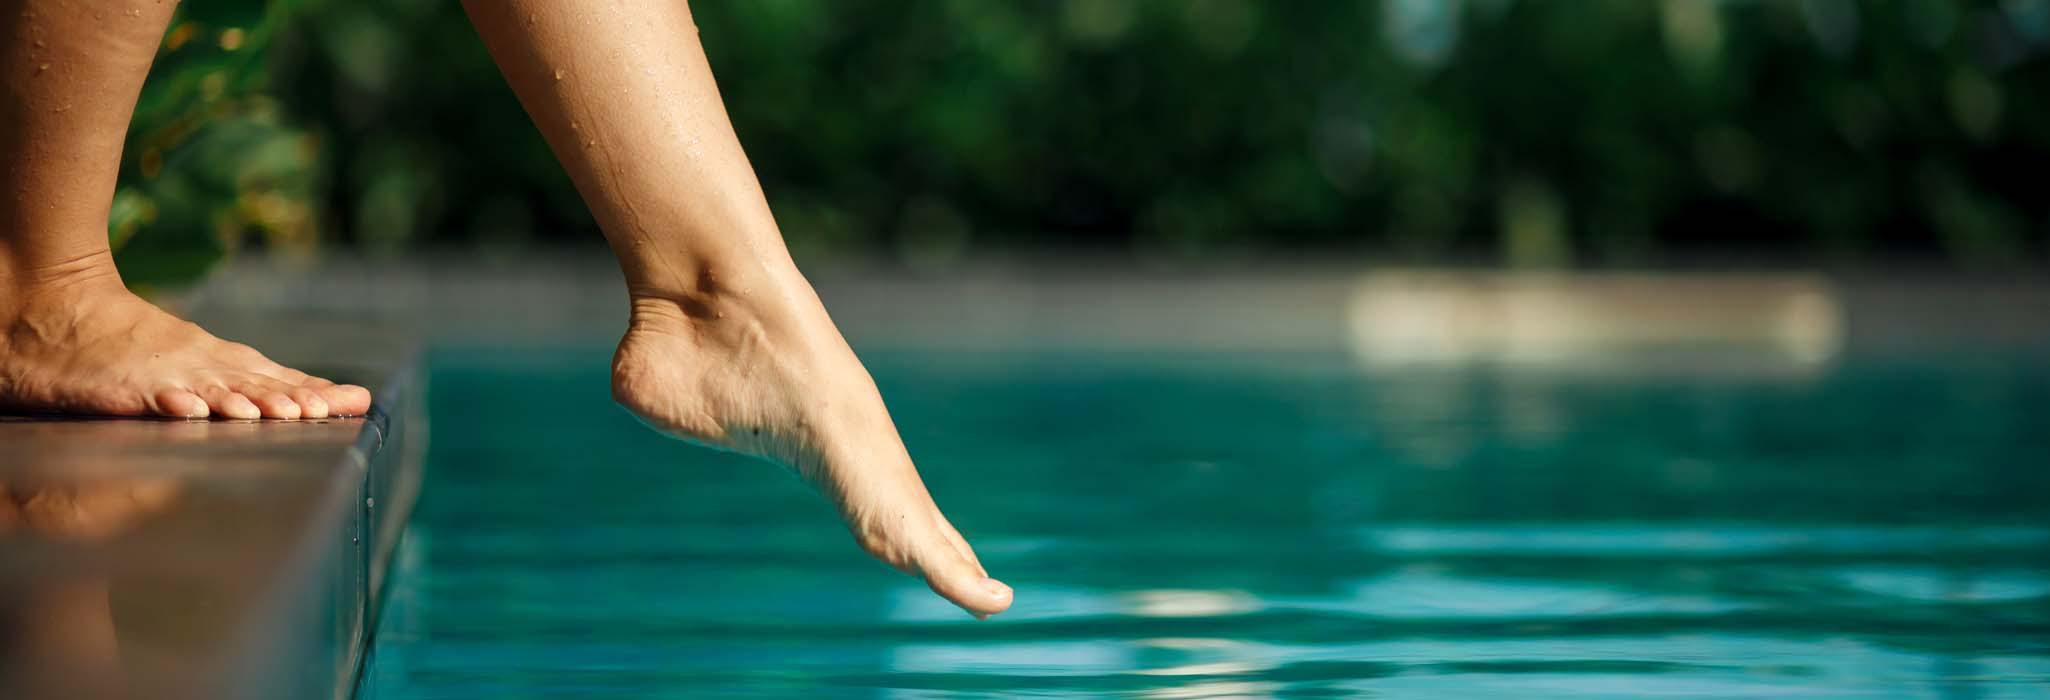 Closeup young female leg touch blue water in swimming pool.